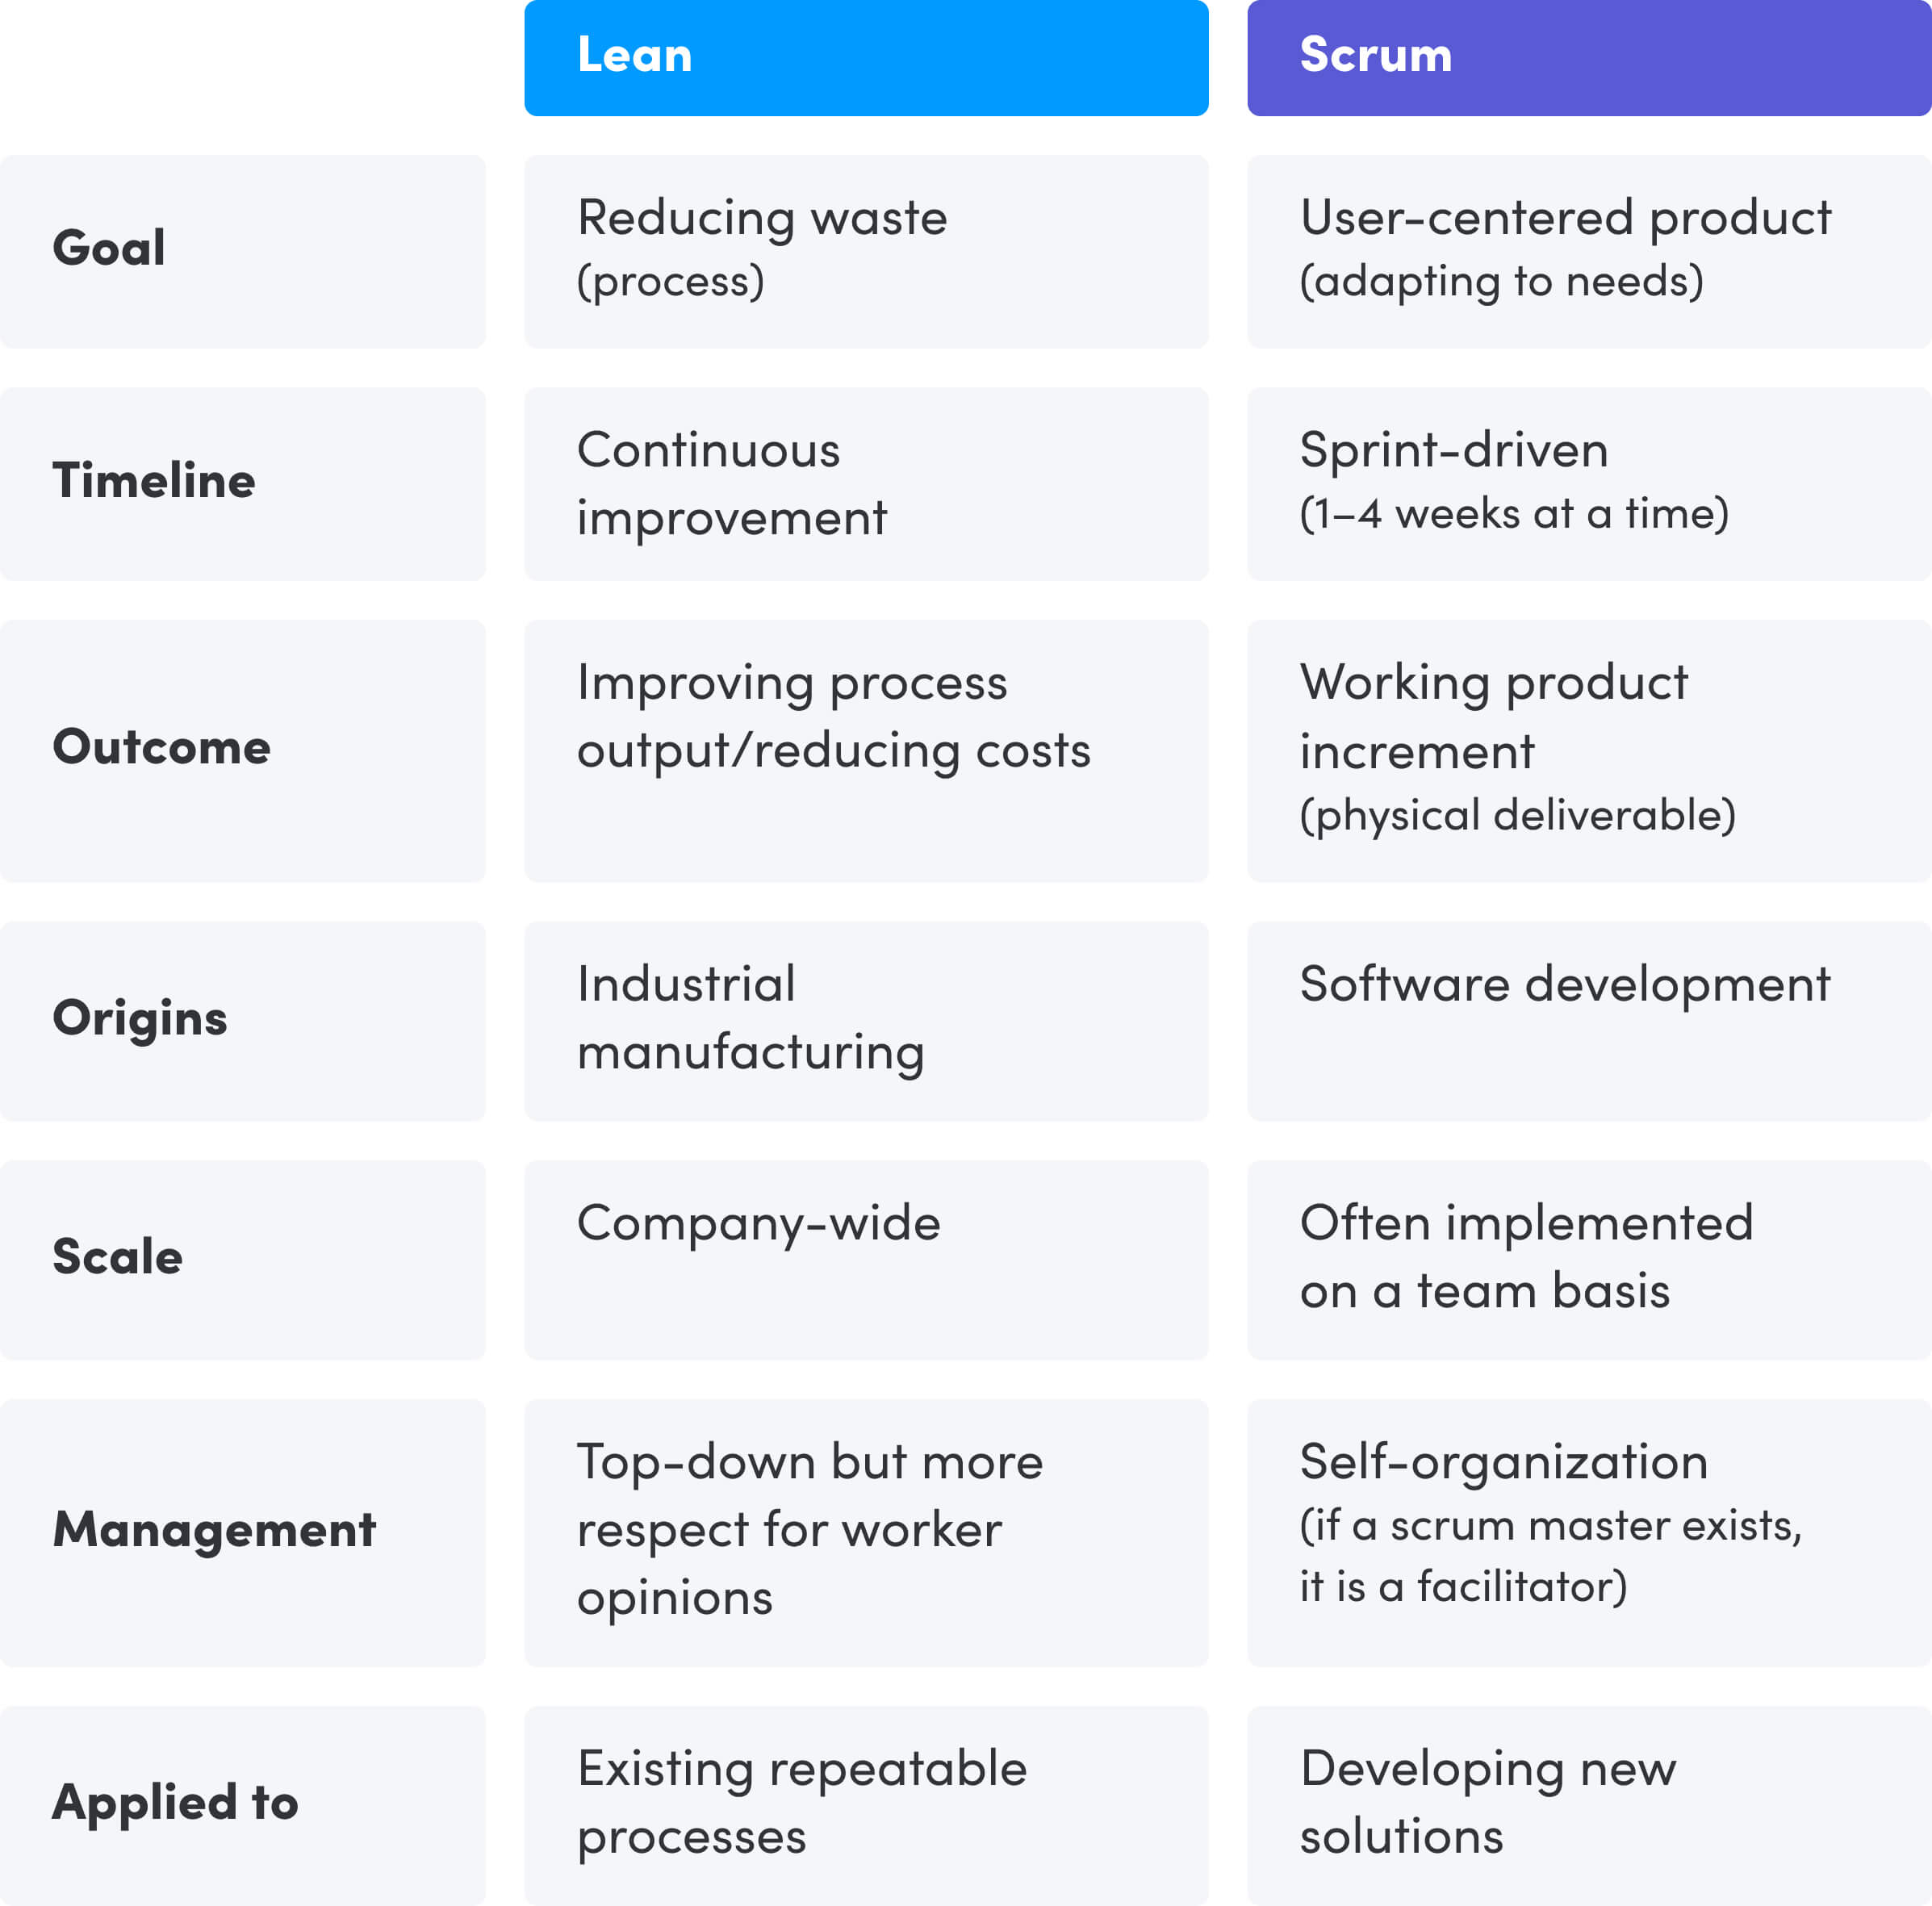 An image showing the differences between lean and scrum boards